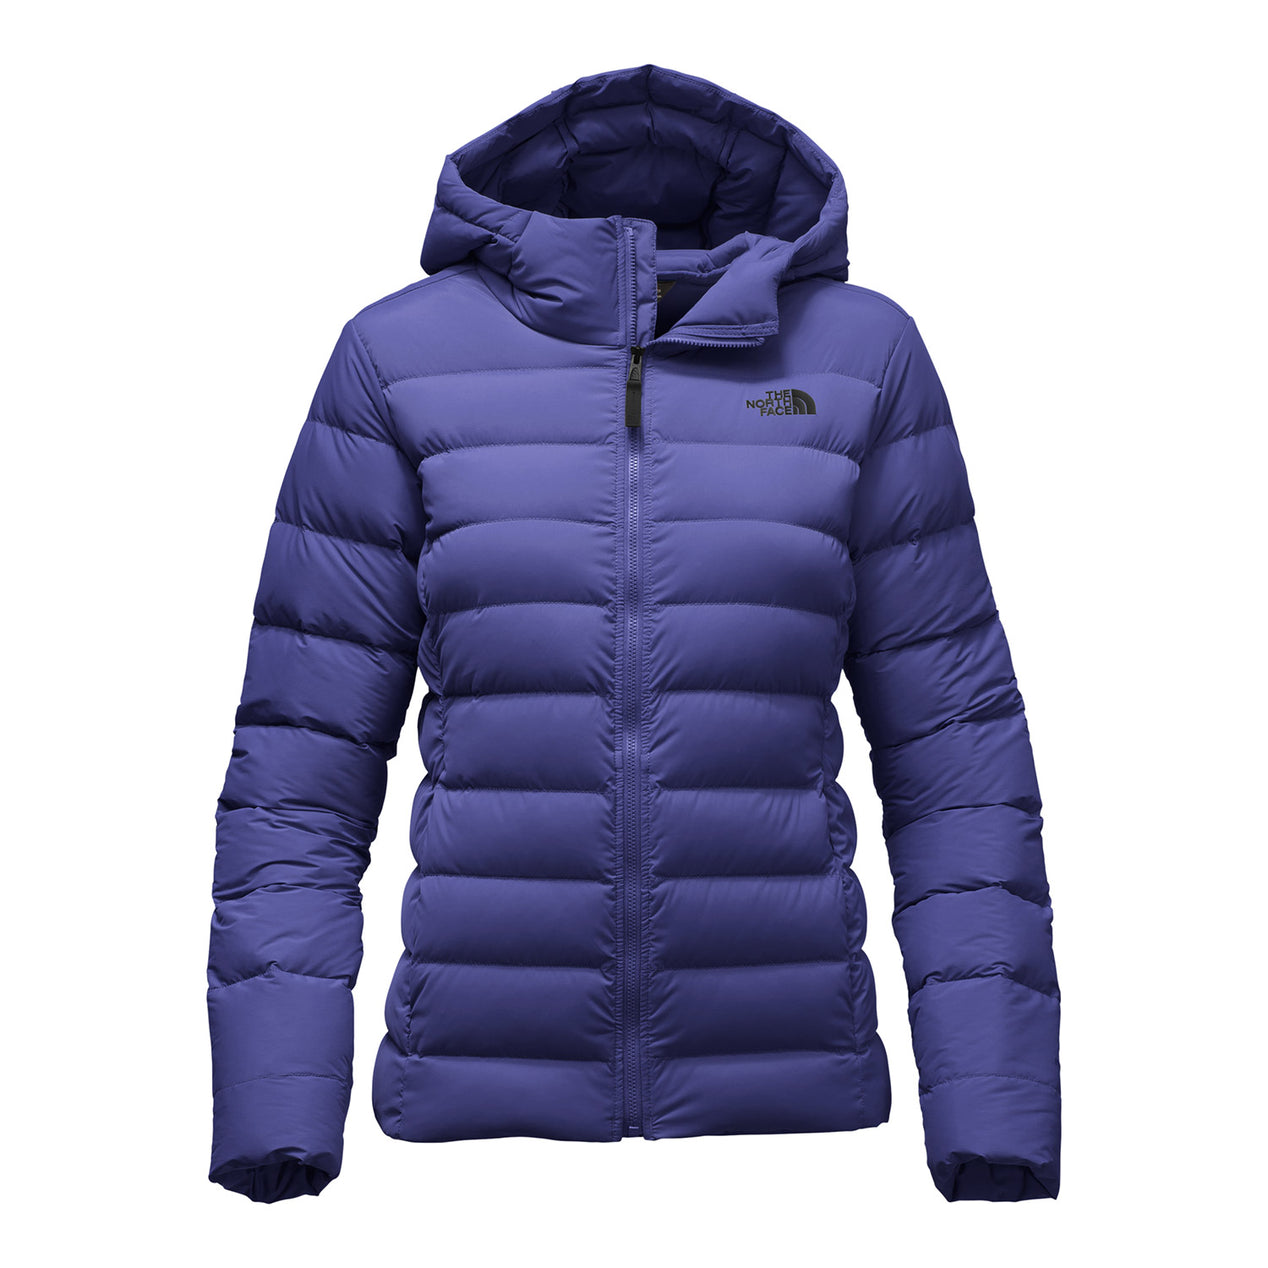 The North Face Women s Stretch Down Jacket Past Season  7f91c0b5f